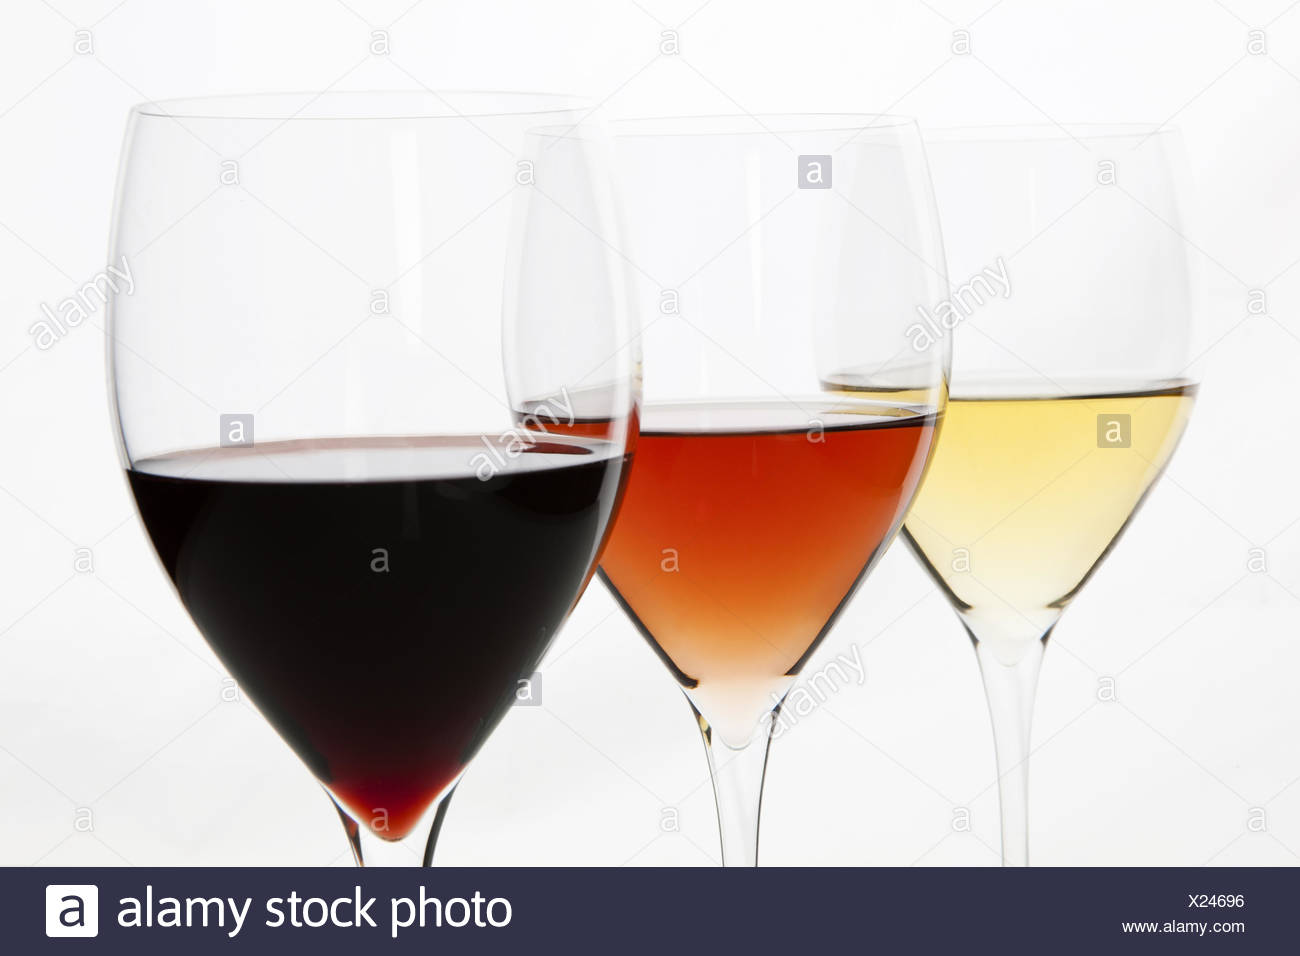 Three Colors Of Wine Red Rose And White Stock Photo 276687970 Alamy